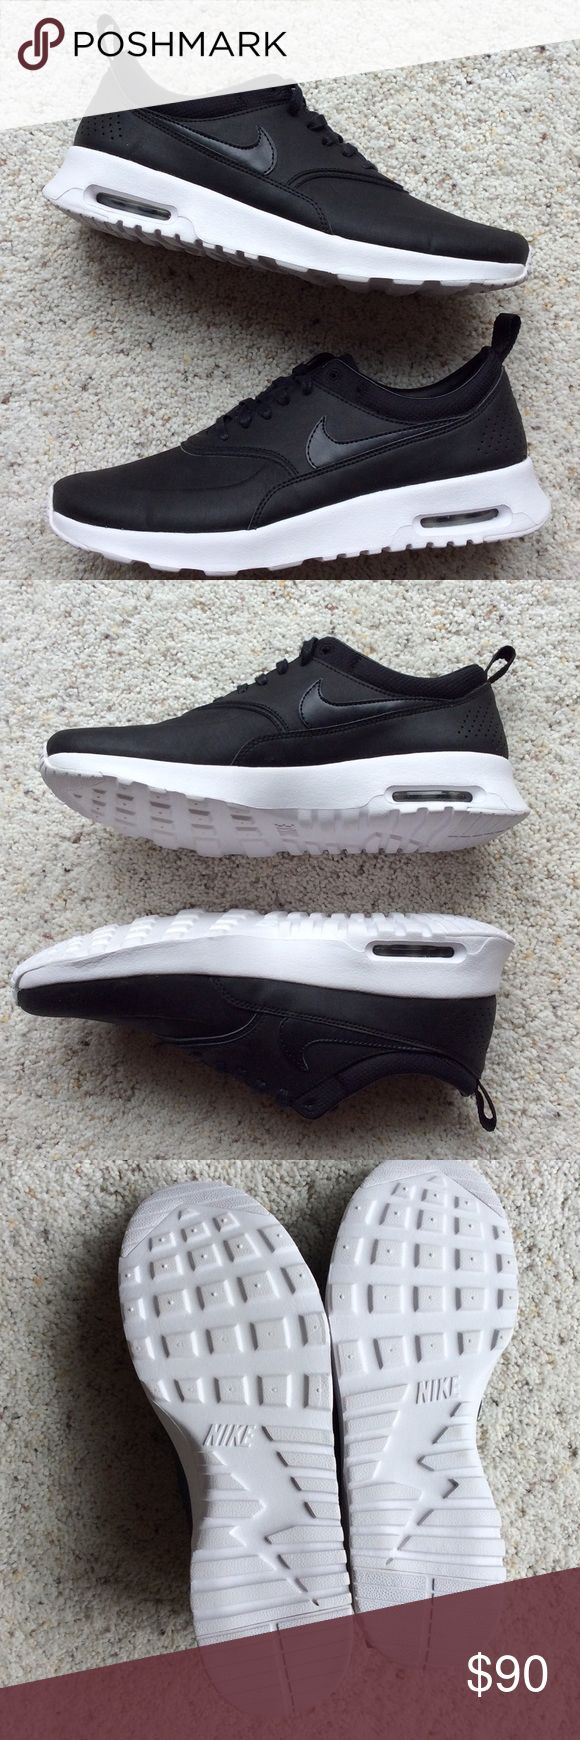 Nike Air Max Thea Premium Leather Black, anthracite premium Air Max Theas. Worn indoors for about an hour for an event. No original box but will ship in a box. I do not trade or give prices in the comments. Nike Shoes Sneakers